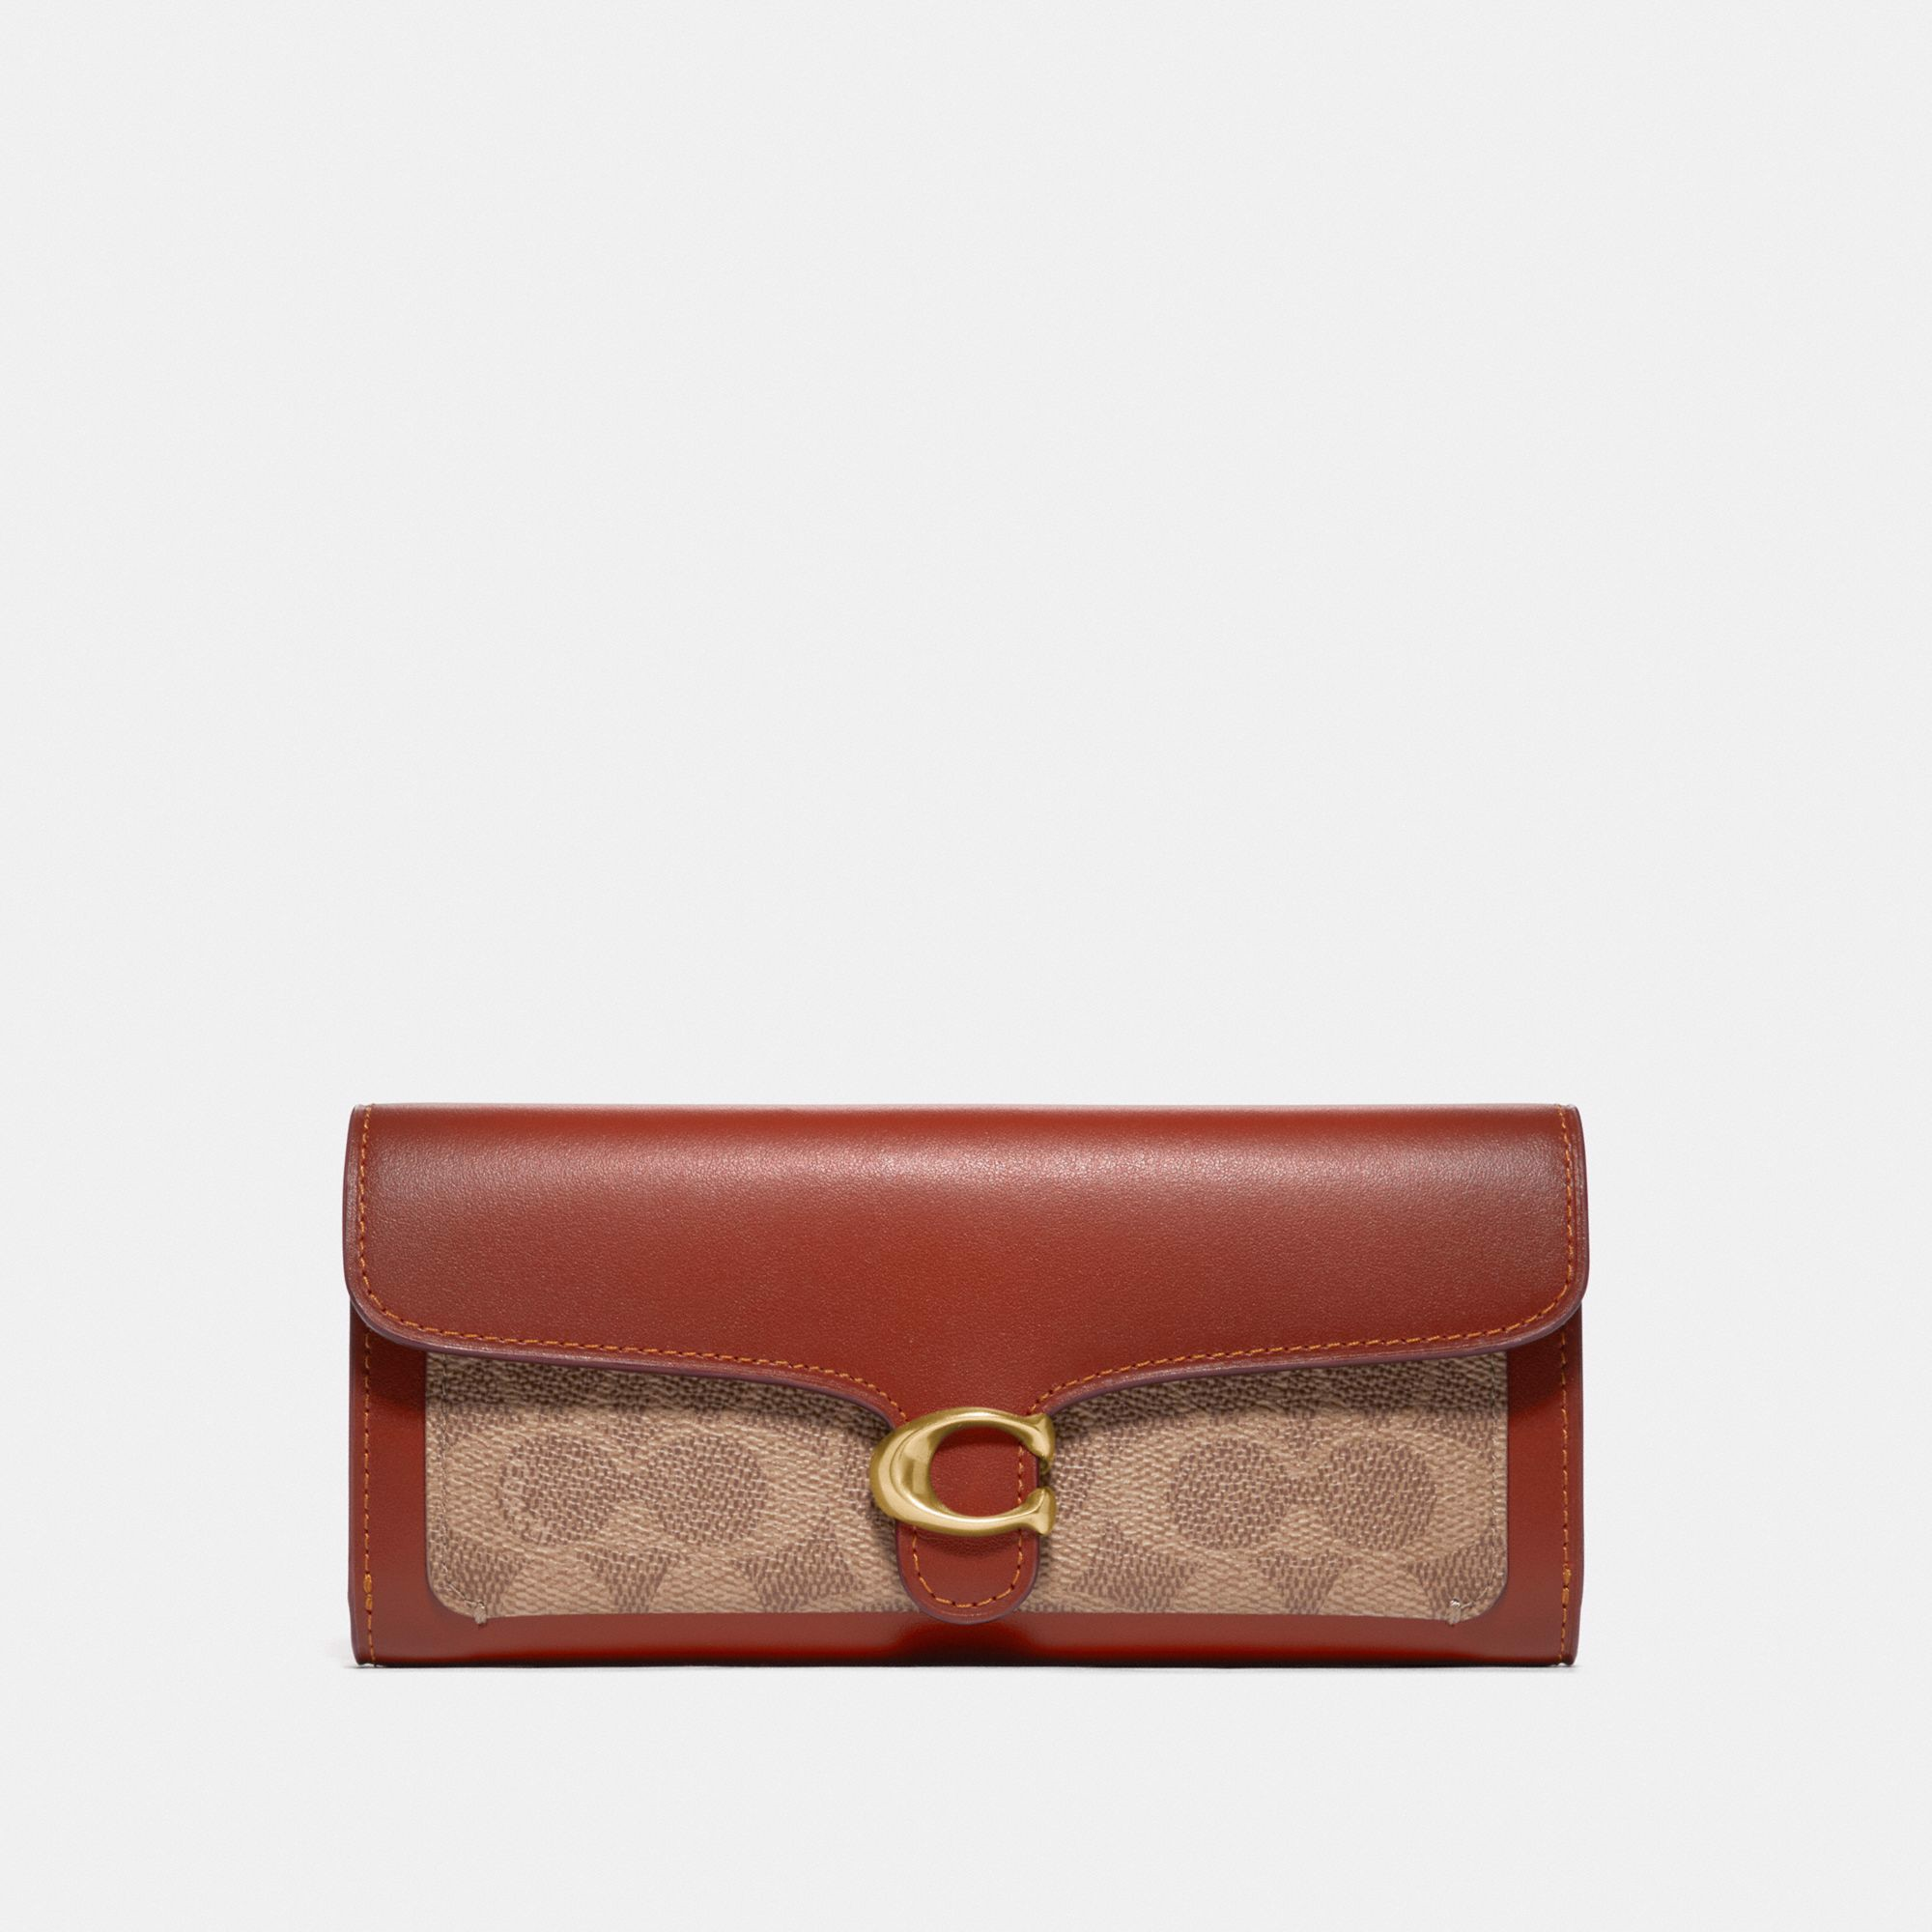 Coach Tabby Long Wallet In Colorblock Signature Canvas - Tan/Rust/Brass